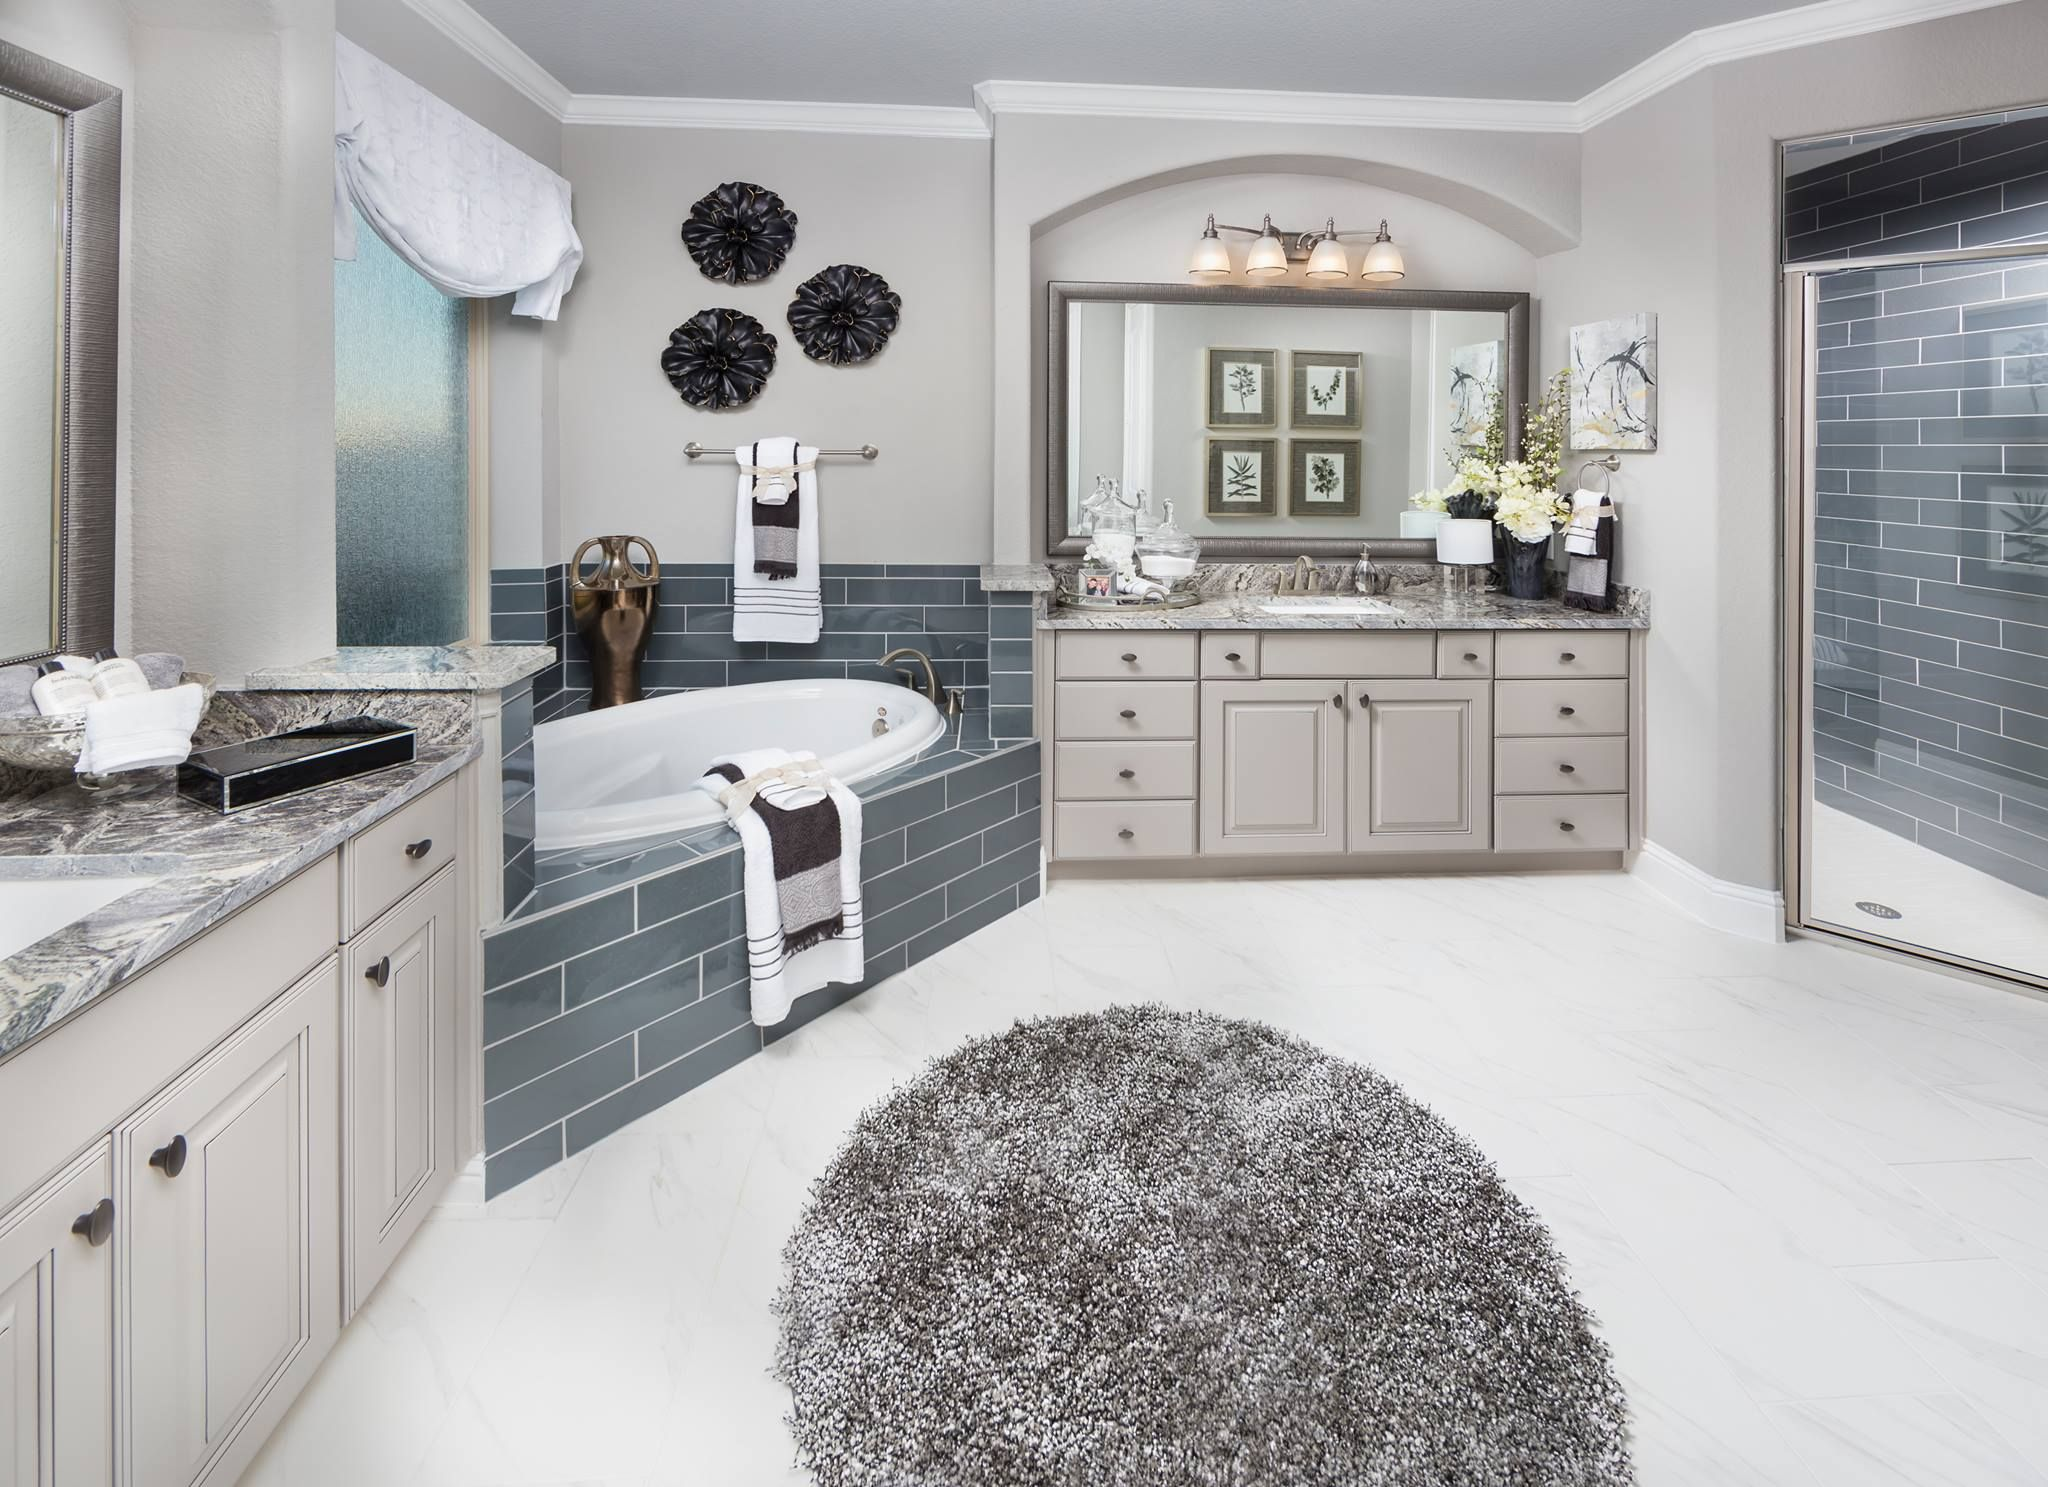 Are you OK with all of the GRAY in this luxurious bathroom